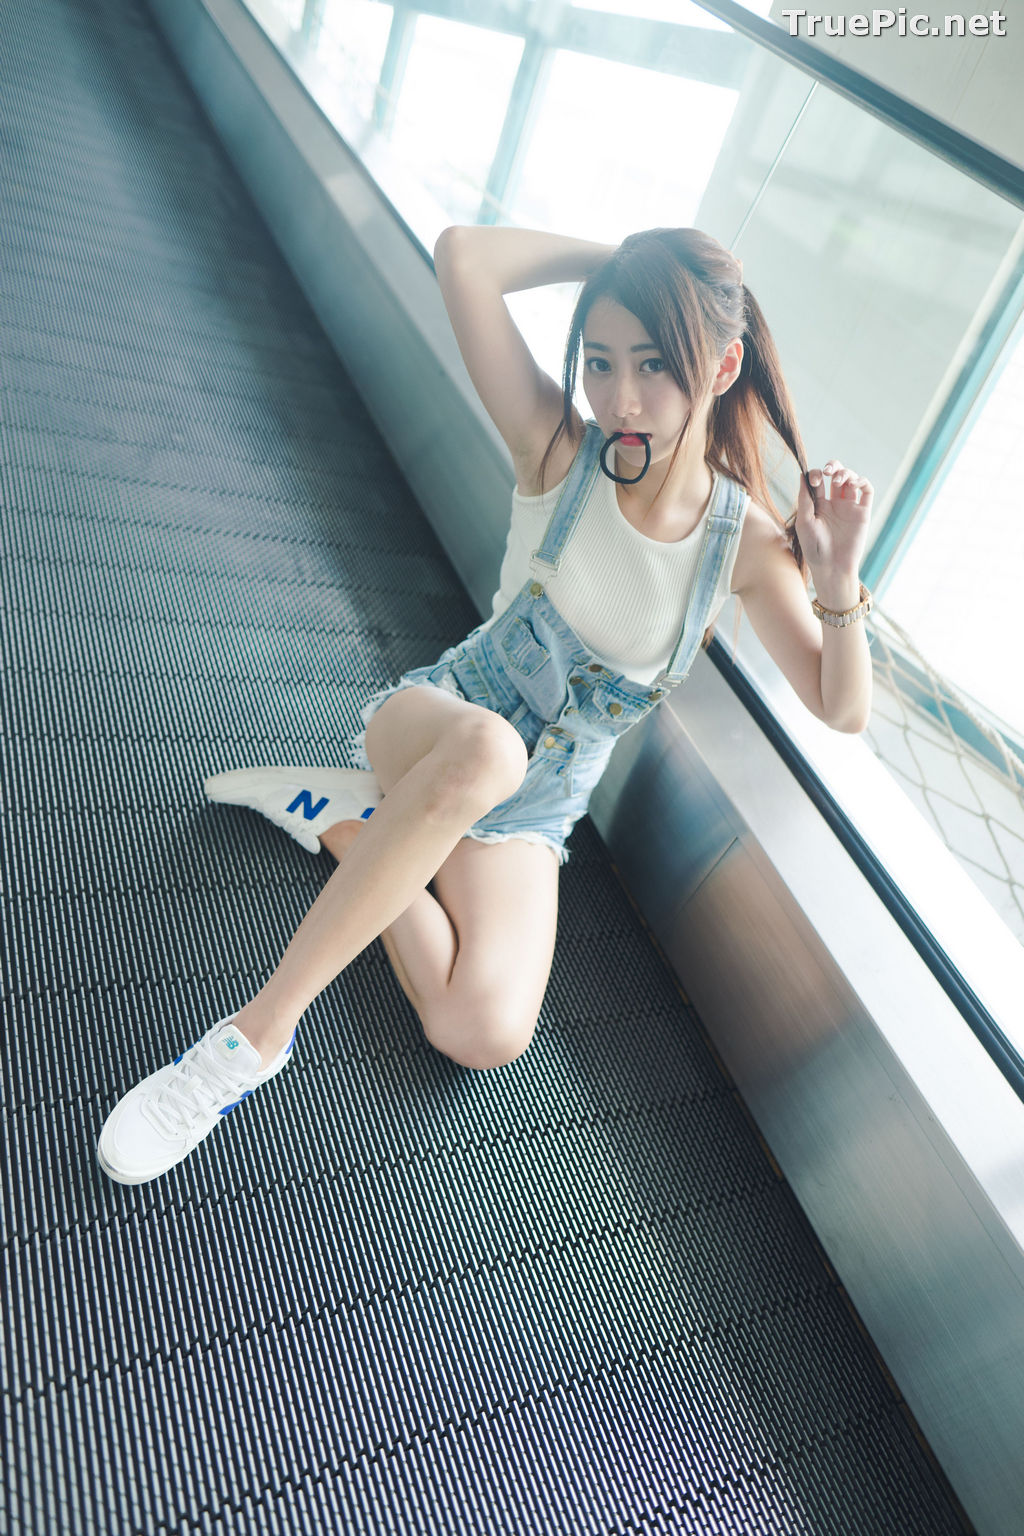 Image Taiwanese Hot Model - Sexy Kendo Girl - TruePic.net - Picture-55